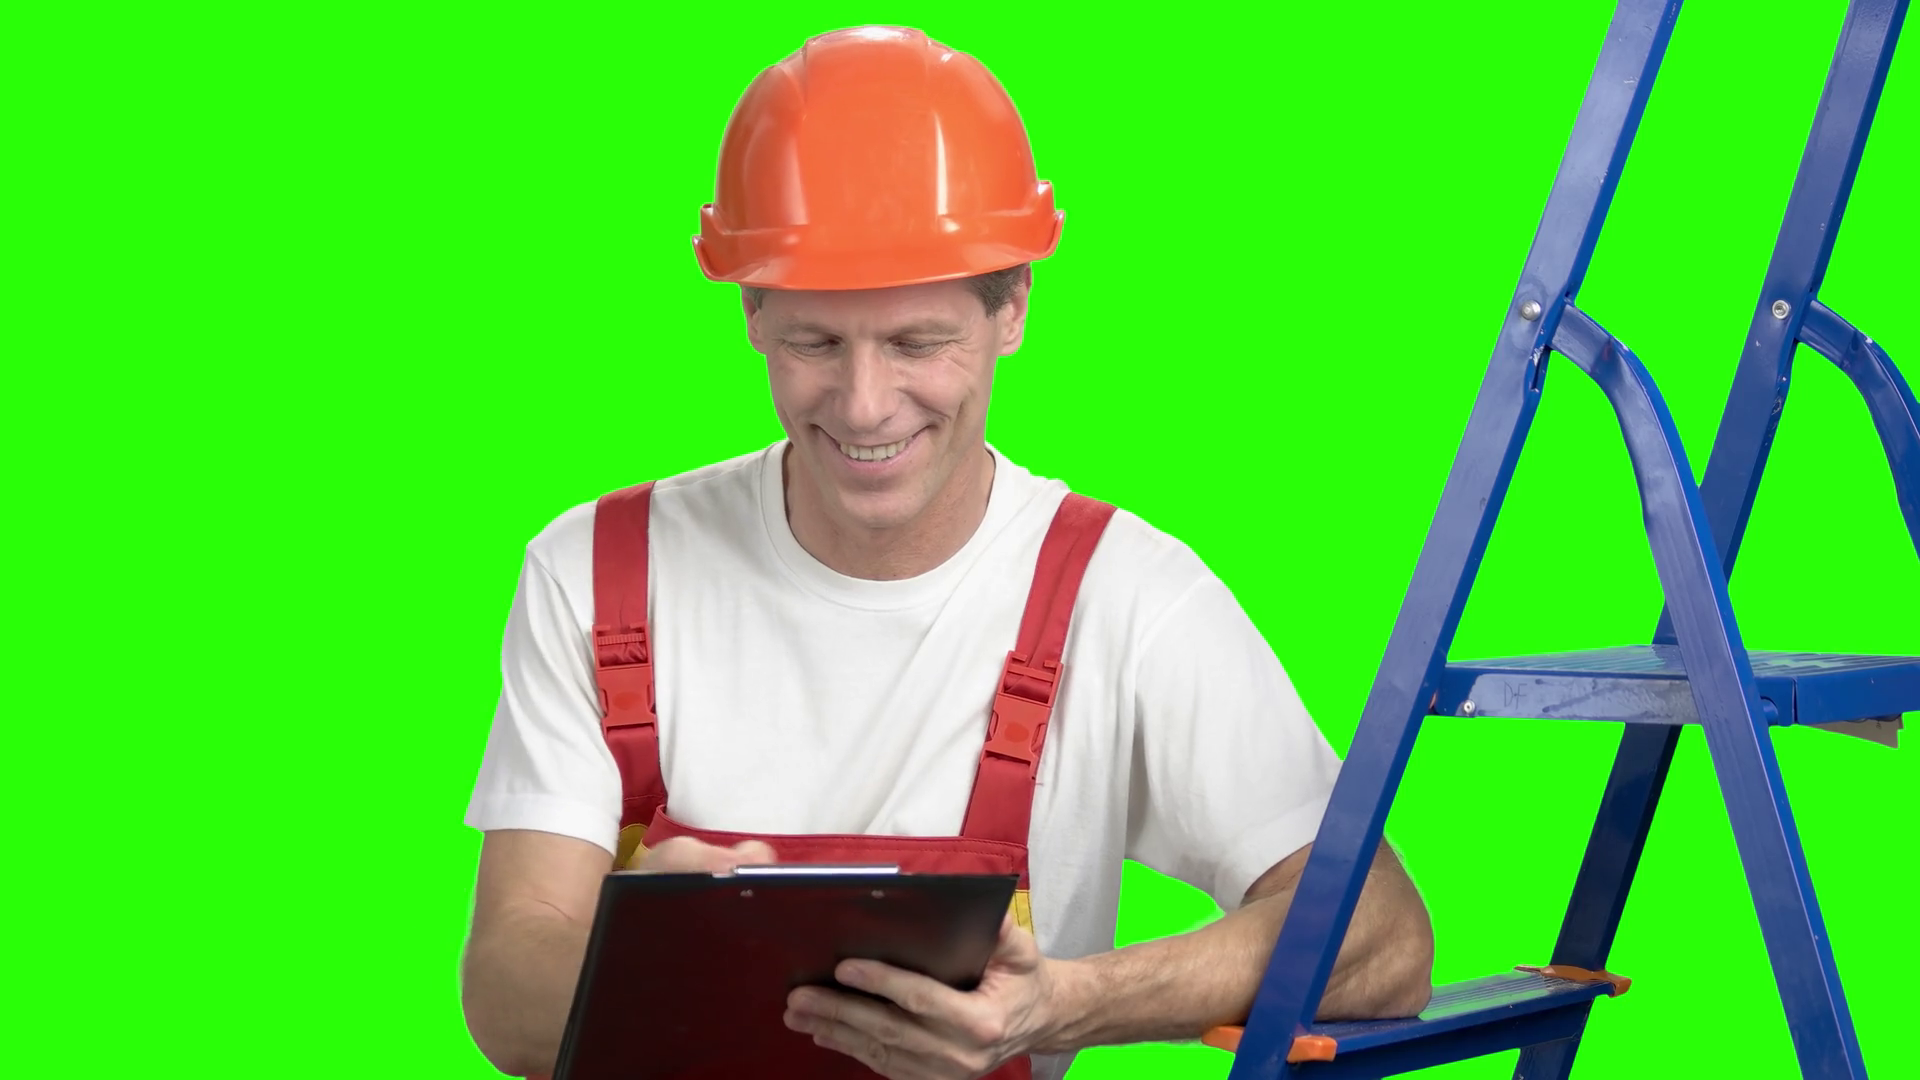 1920x1080 Foreman Checking New Object, Green Screen. Smiling Project Manager